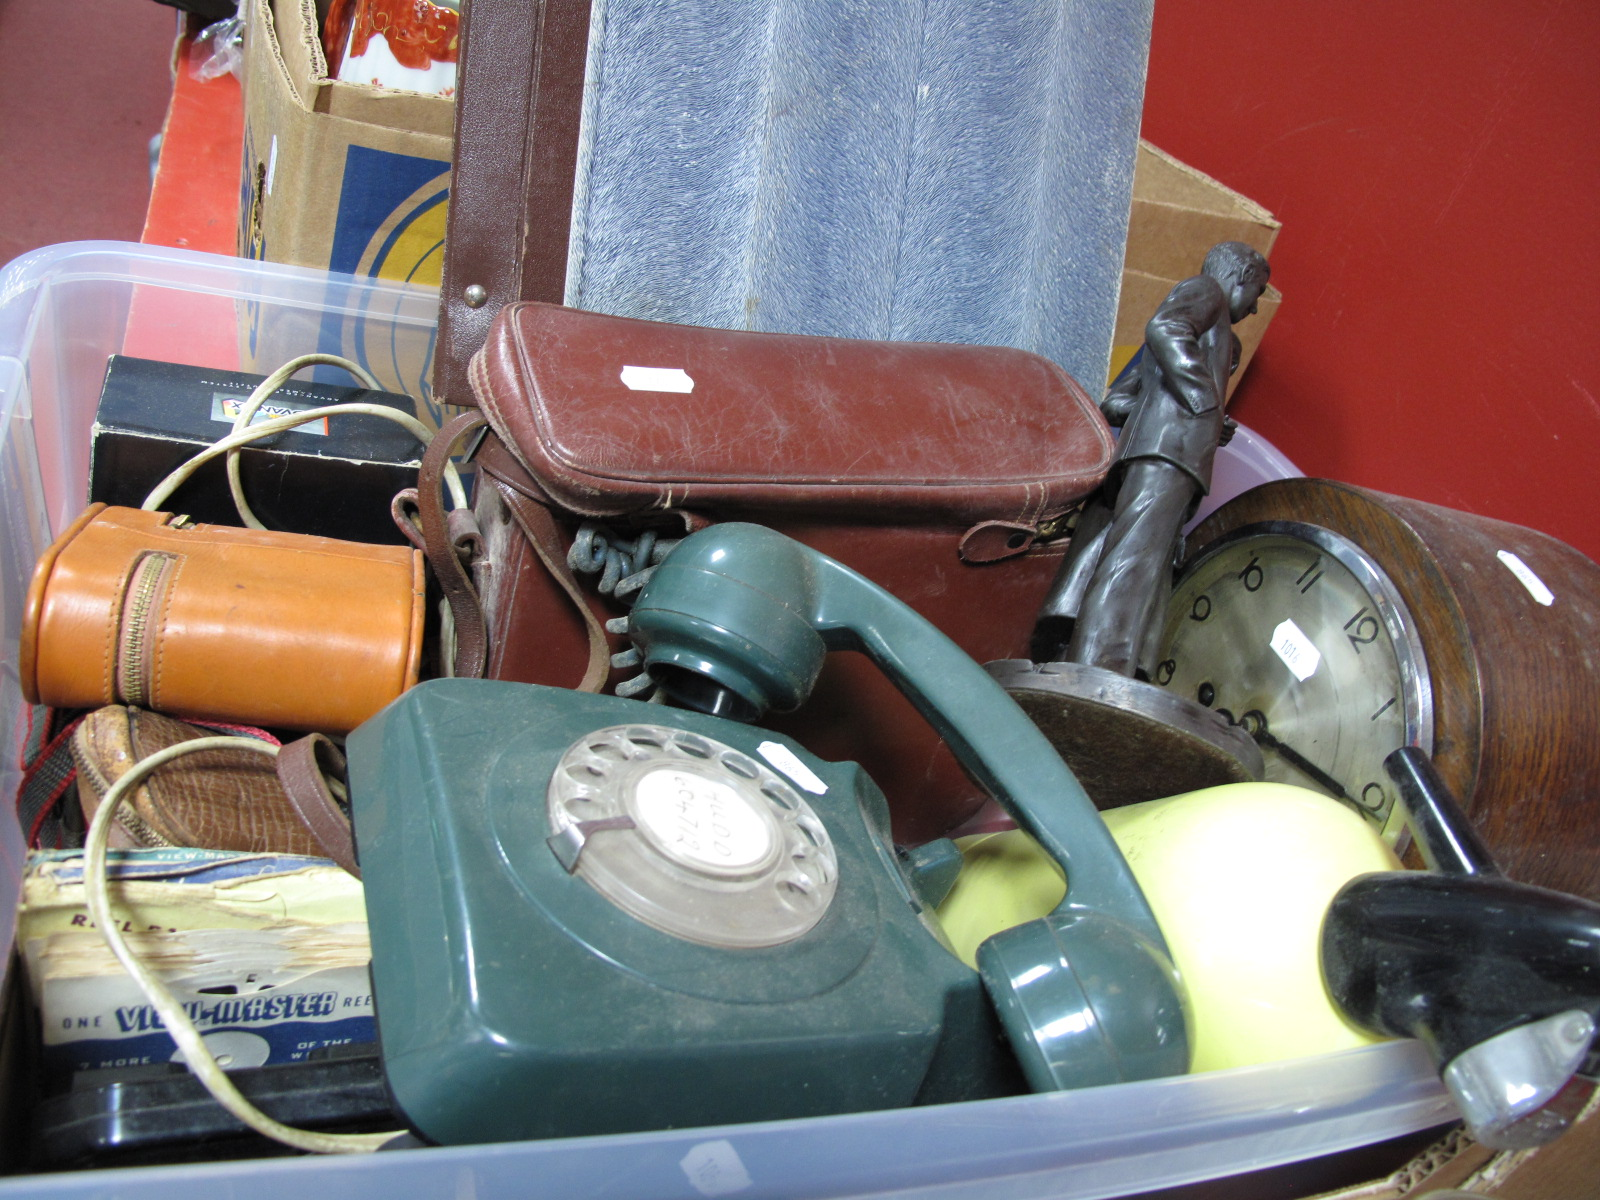 Lot 1015 - A Green Anvil Telephone, cameras, oak mantel clock, records, Charles & Diana figures etc:- One Box